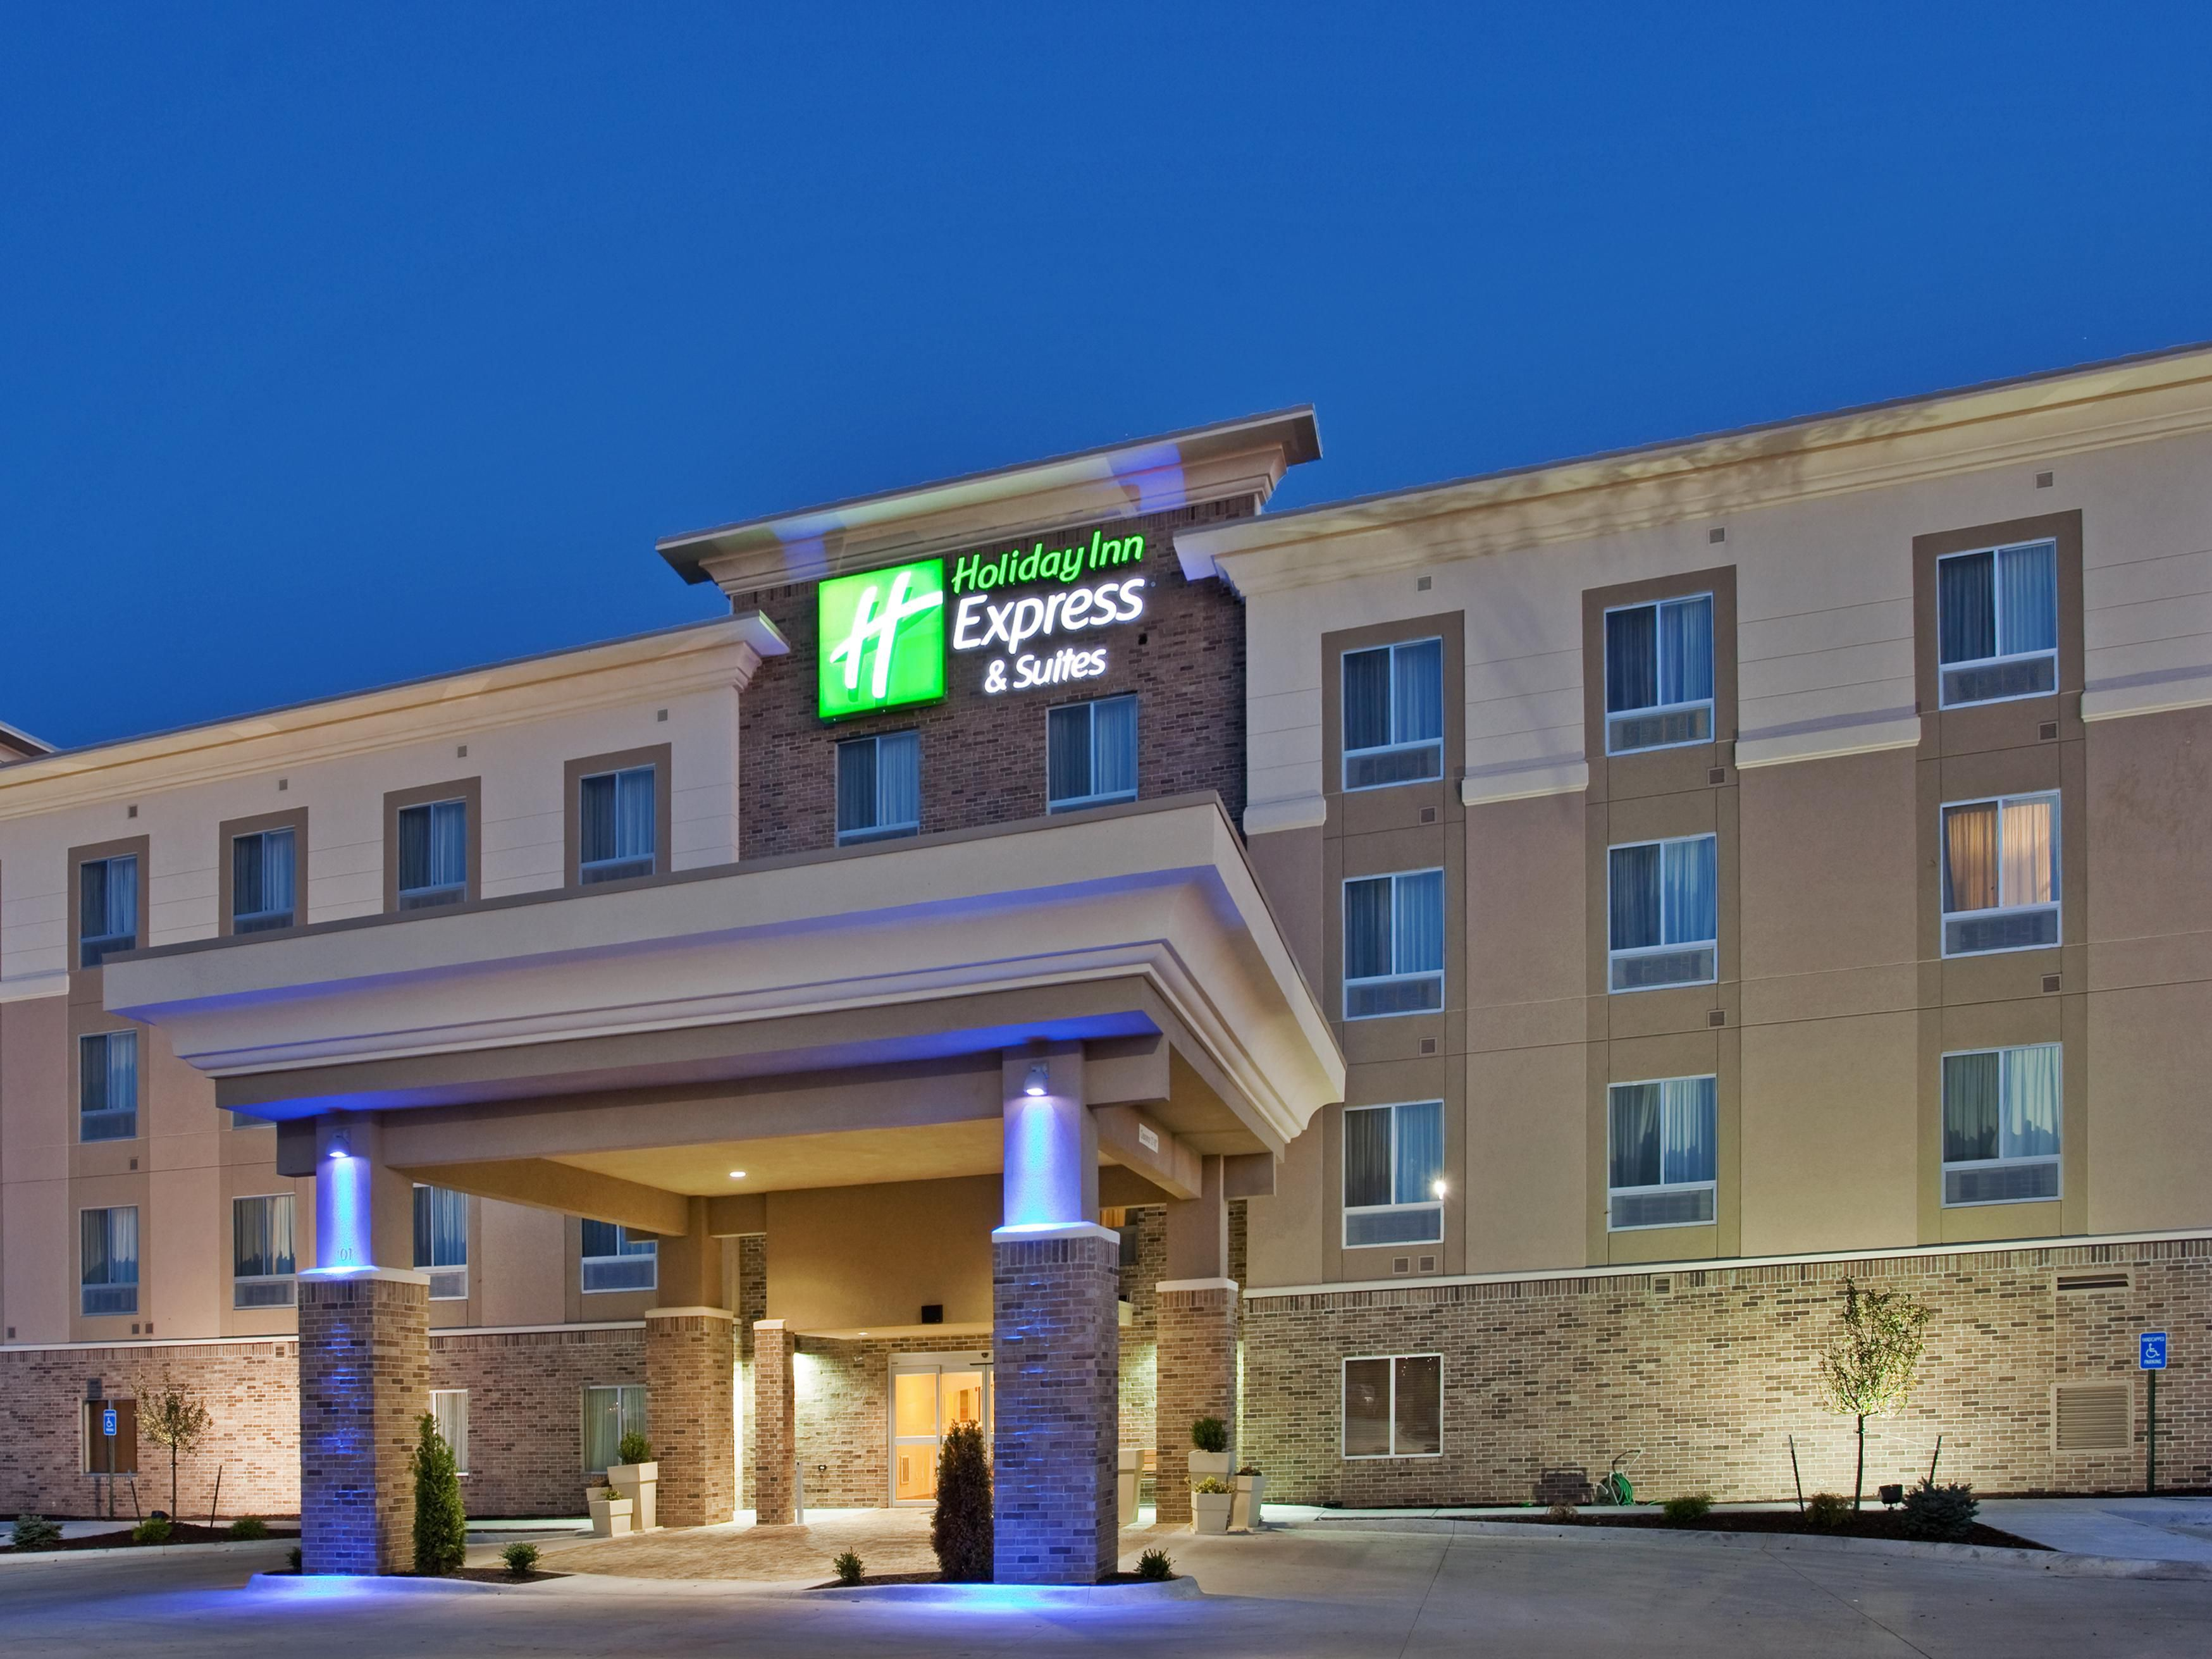 Welcome to the Holiday Inn Express and Suites Topeka North